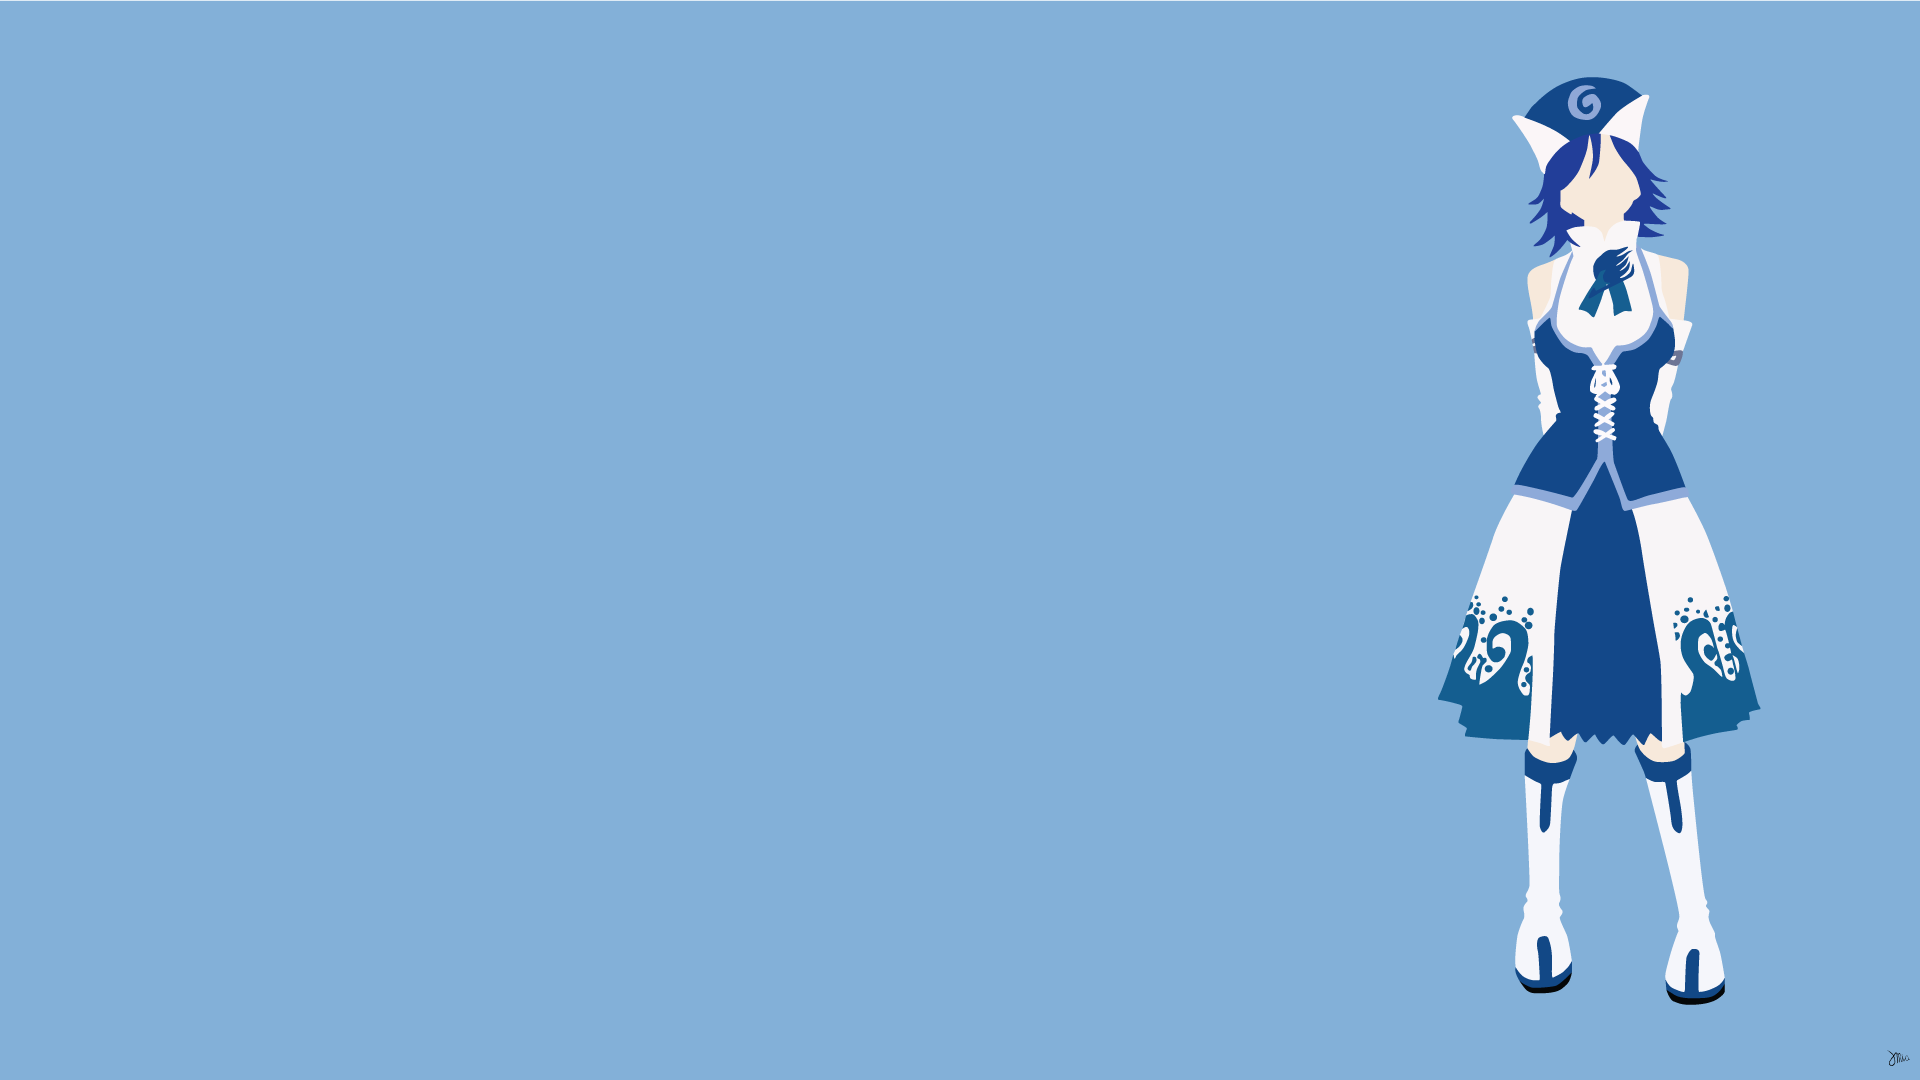 fairy tail minimalist wallpaper - photo #8